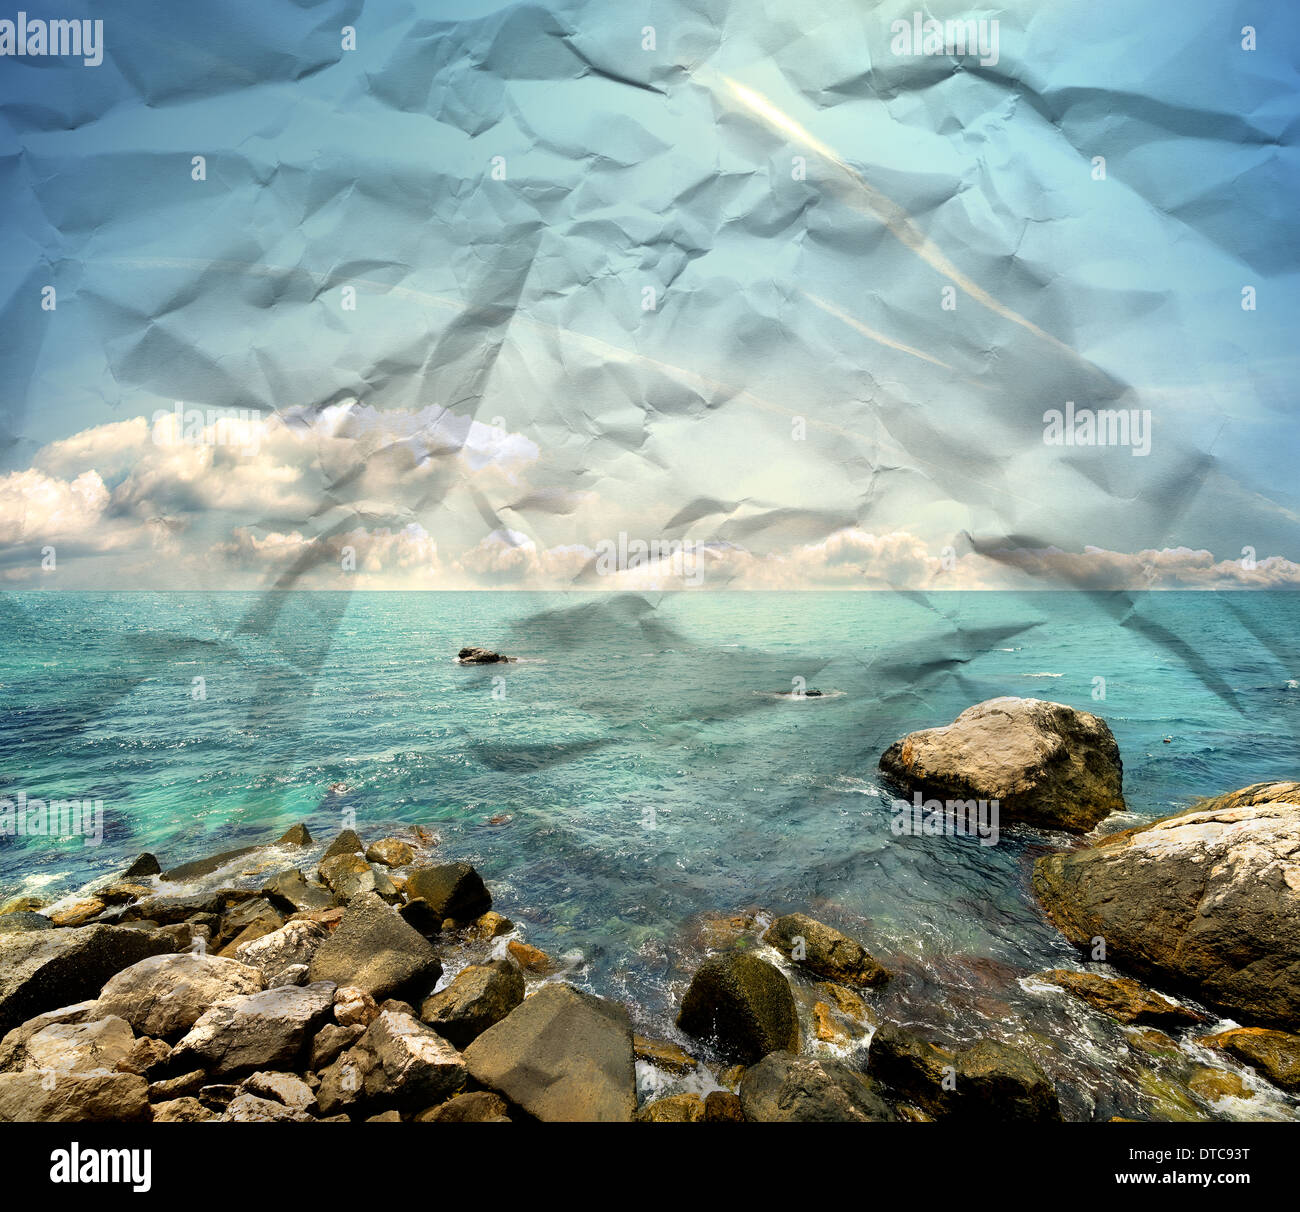 Stony beach, clear sea and blue cloudy sky on a paper texture - Stock Image